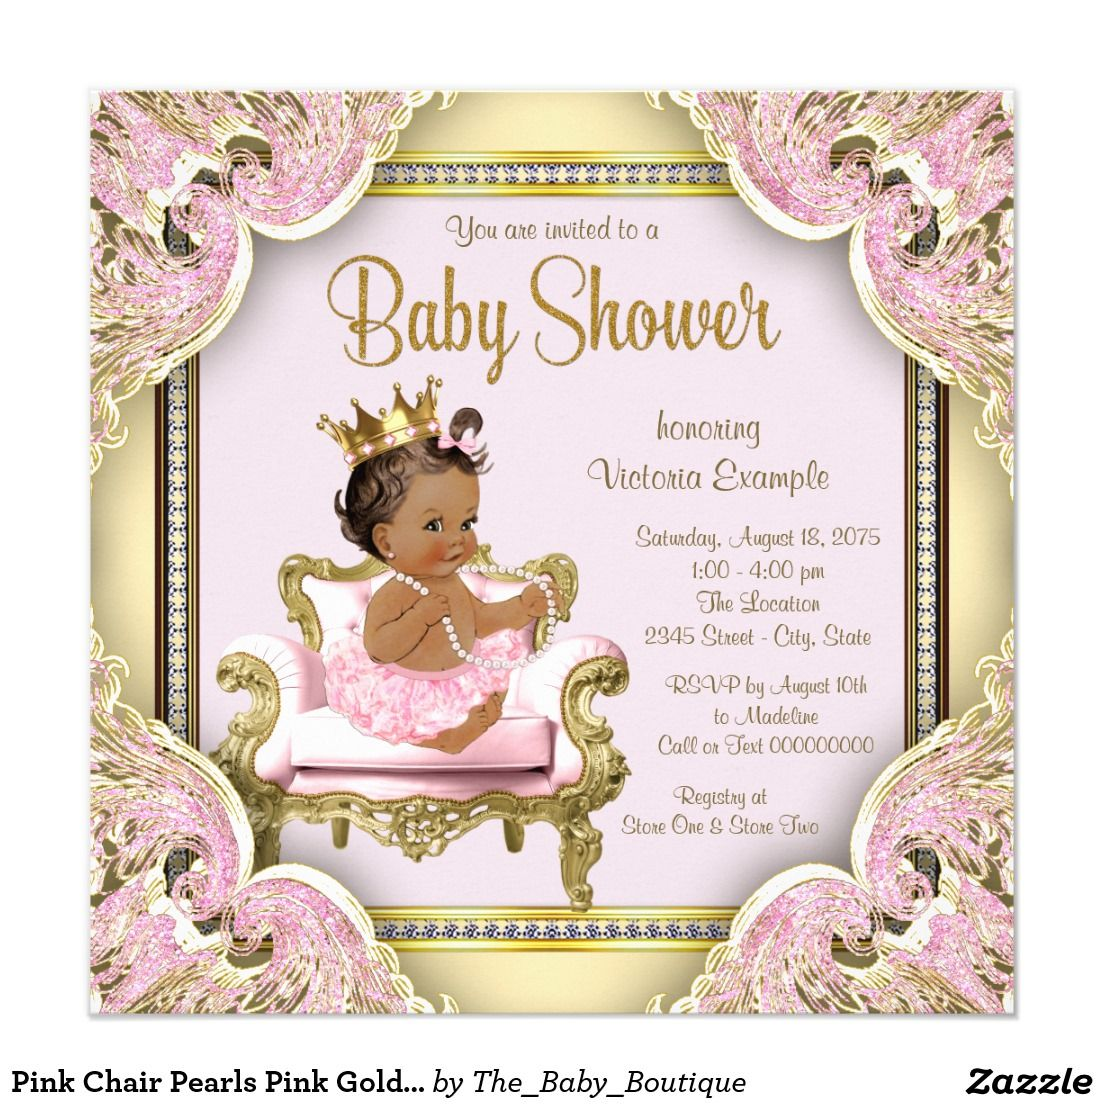 Pink chair pearls pink gold ethnic baby shower invitation ethnic pink chair pearls pink gold ethnic baby shower invitation princess filmwisefo